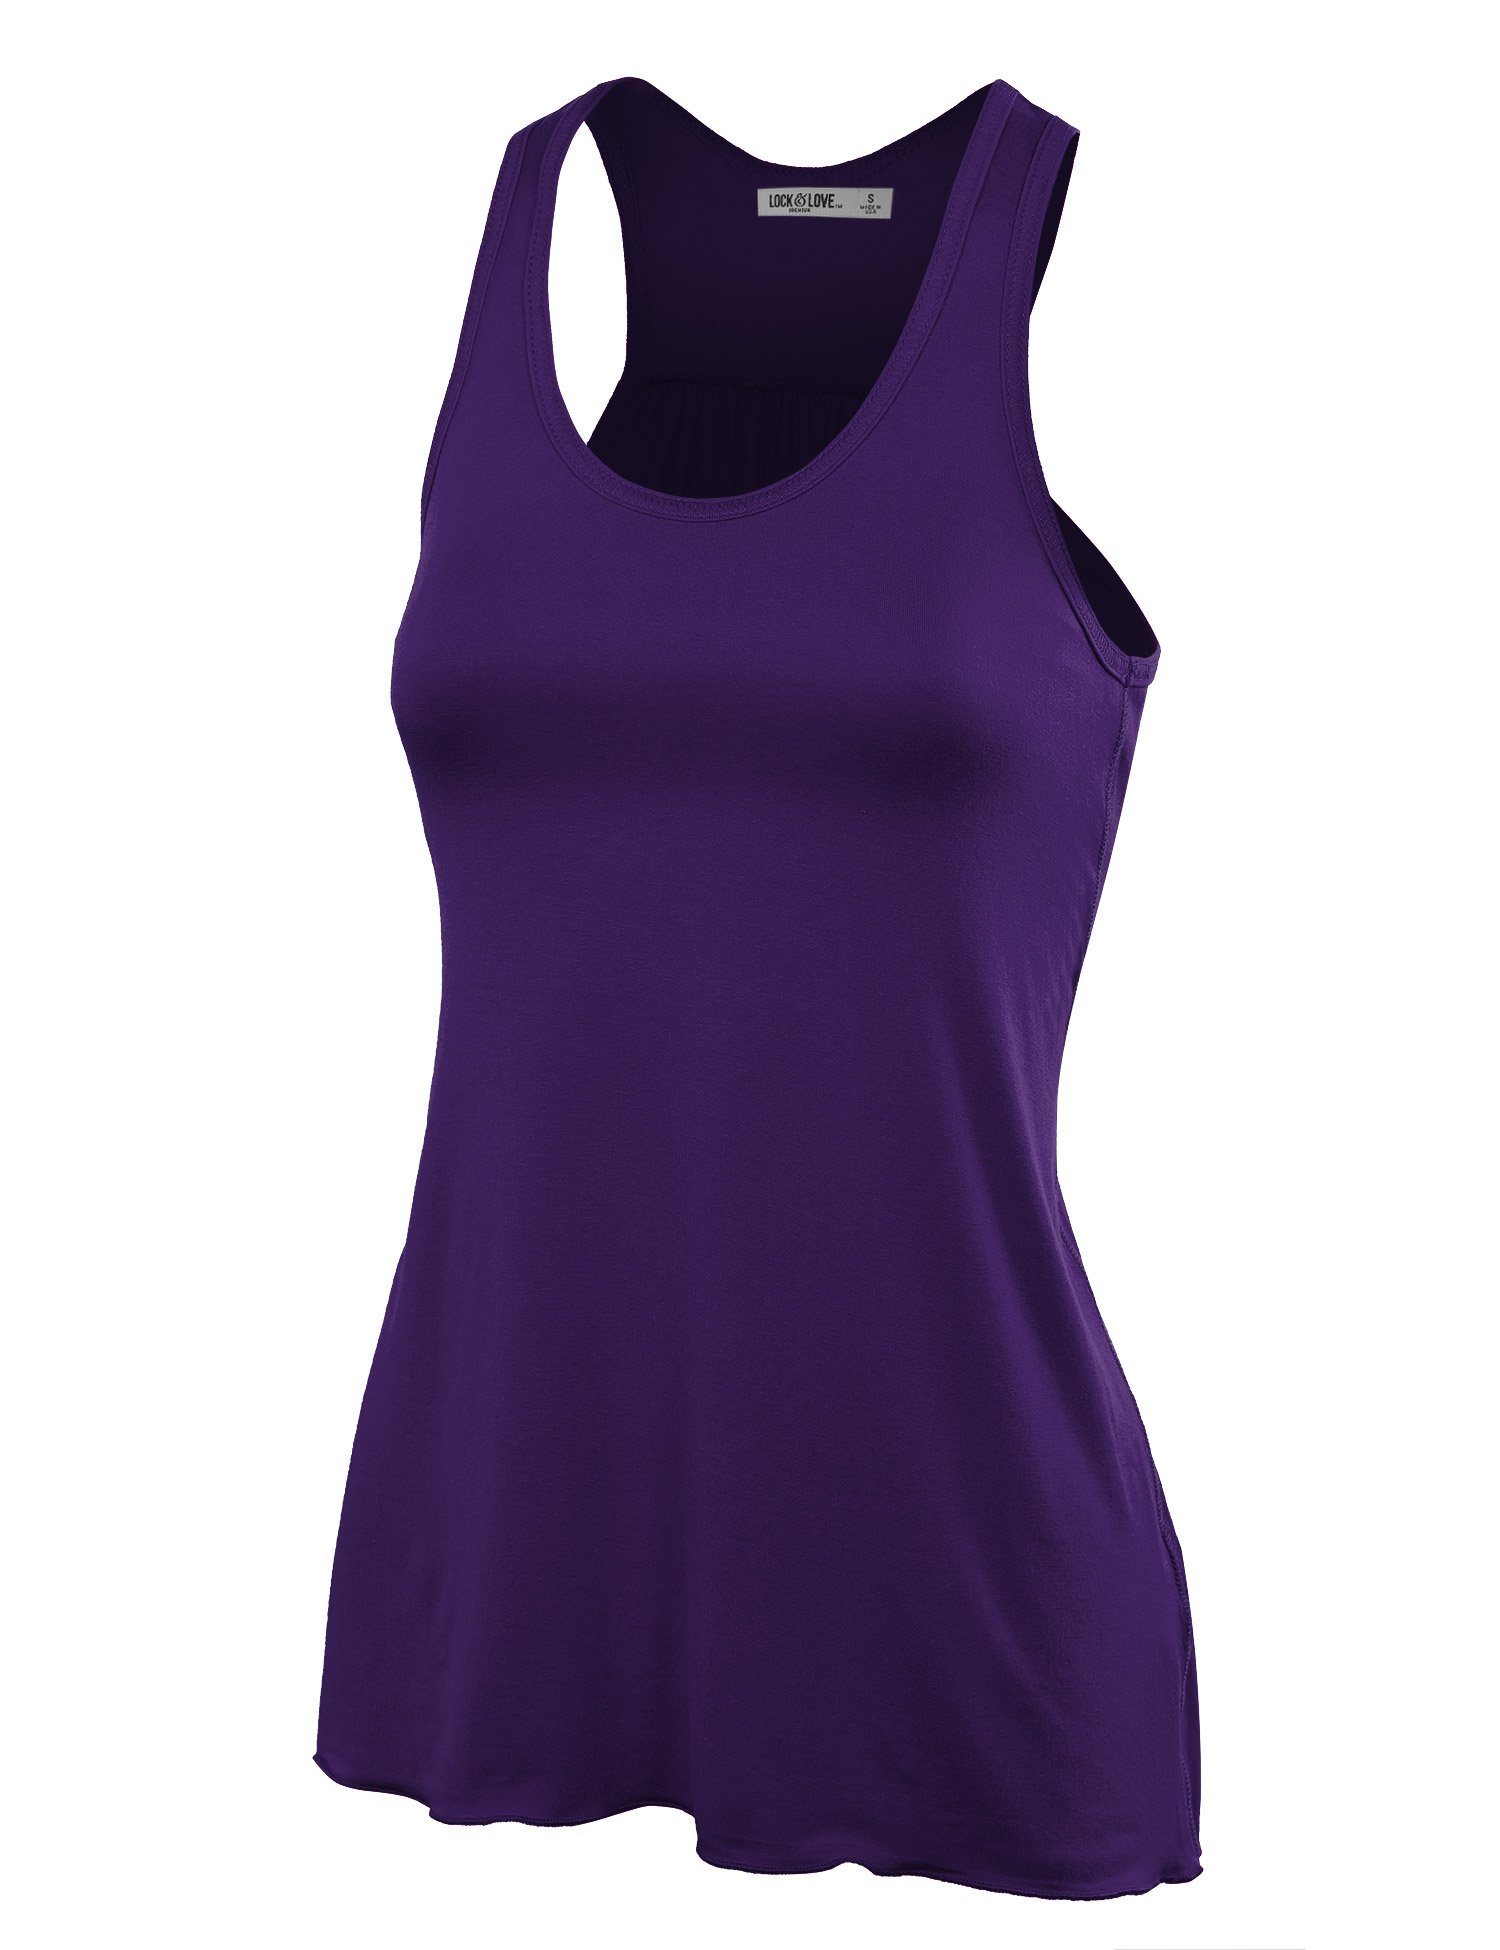 Lock and Love Women's Sleeveless All-Purpose Racerback Tank top-Made in U.S.A.